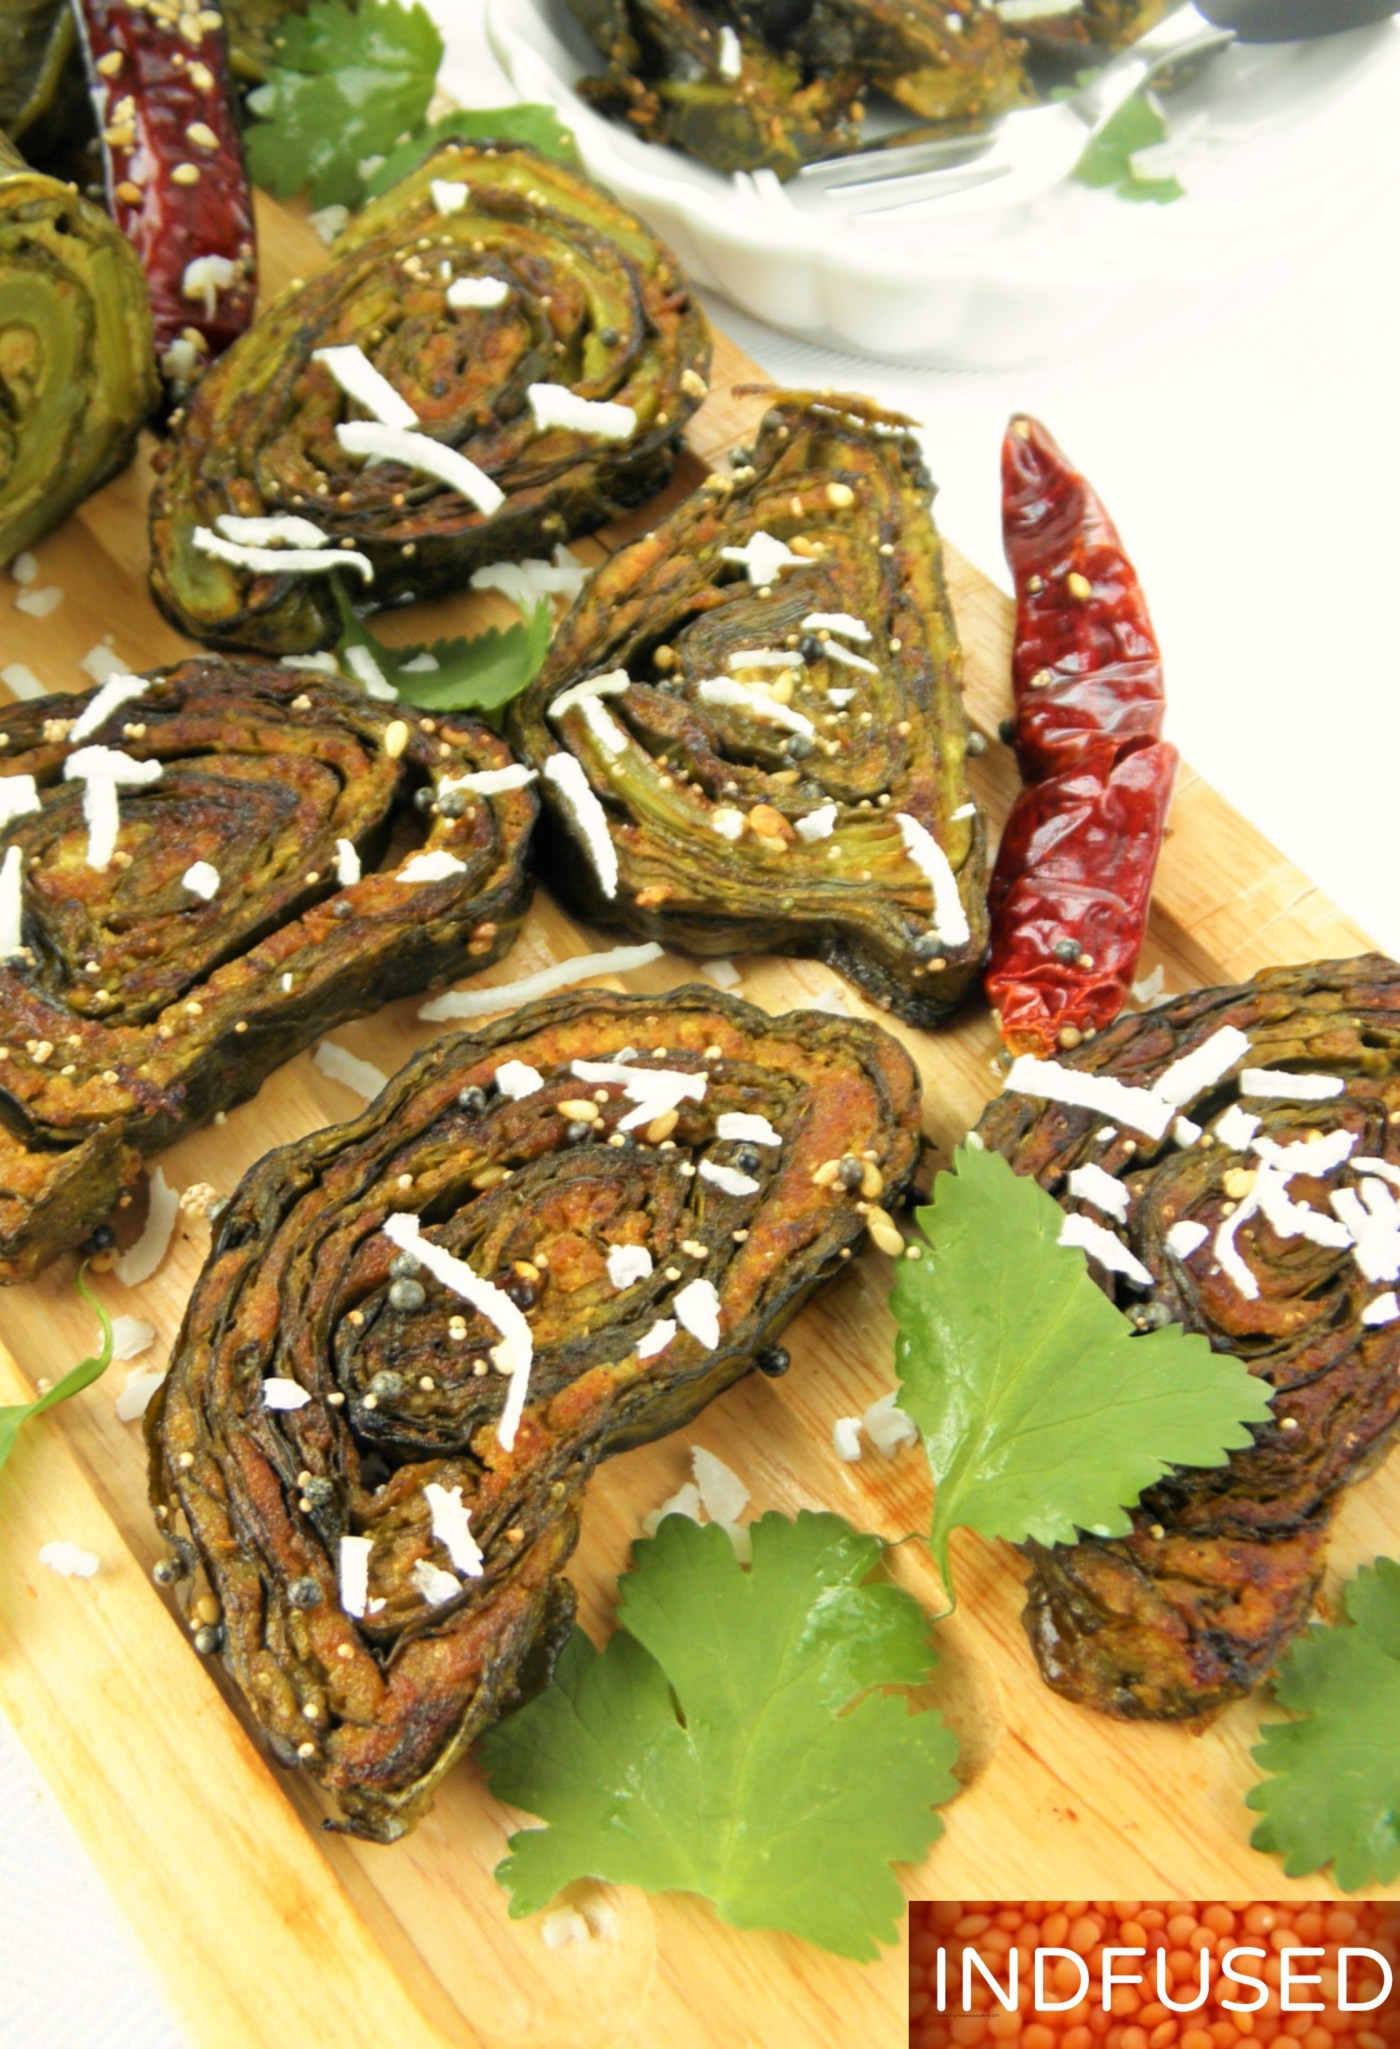 Indian #cuisine#collard #green #savory #roll with #Indian #spices #nutritious, #protein rich, #vegetarian,#lowfat, #glutenfree